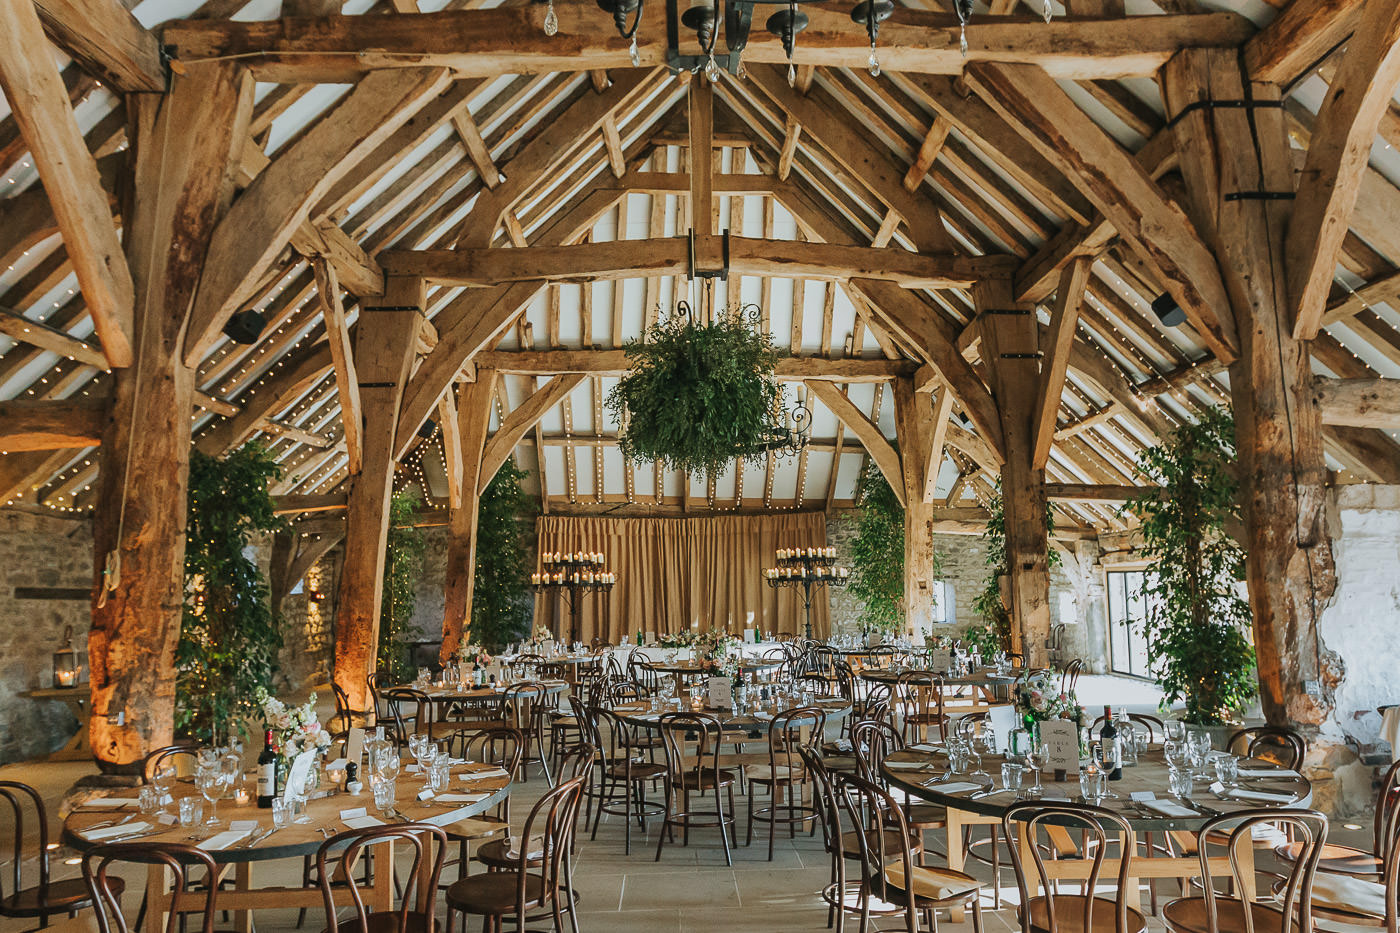 Tithe Barn - Laura Calderwood Photography - 29.3.19 - Mr & Mrs Lancaster290319-131.jpg